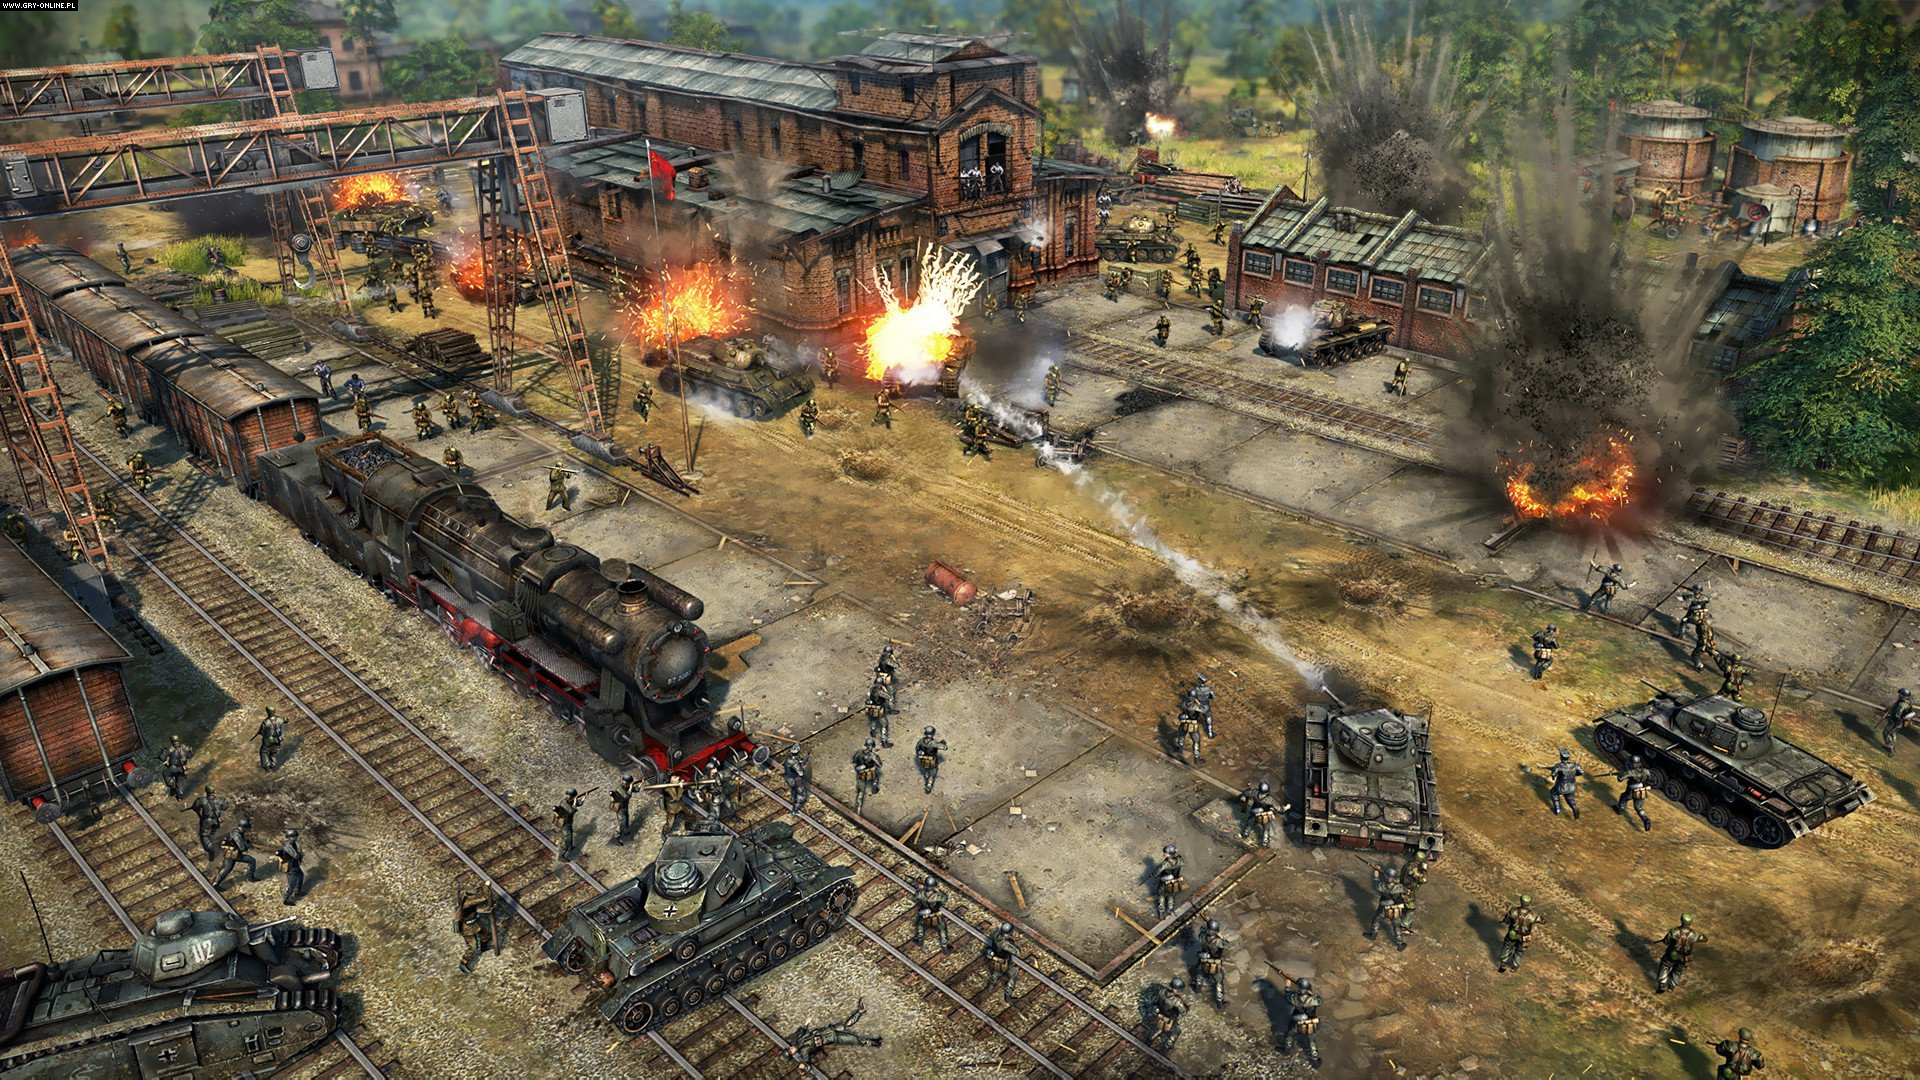 Blitzkrieg 3 PC Gry Screen 1/25, Nival